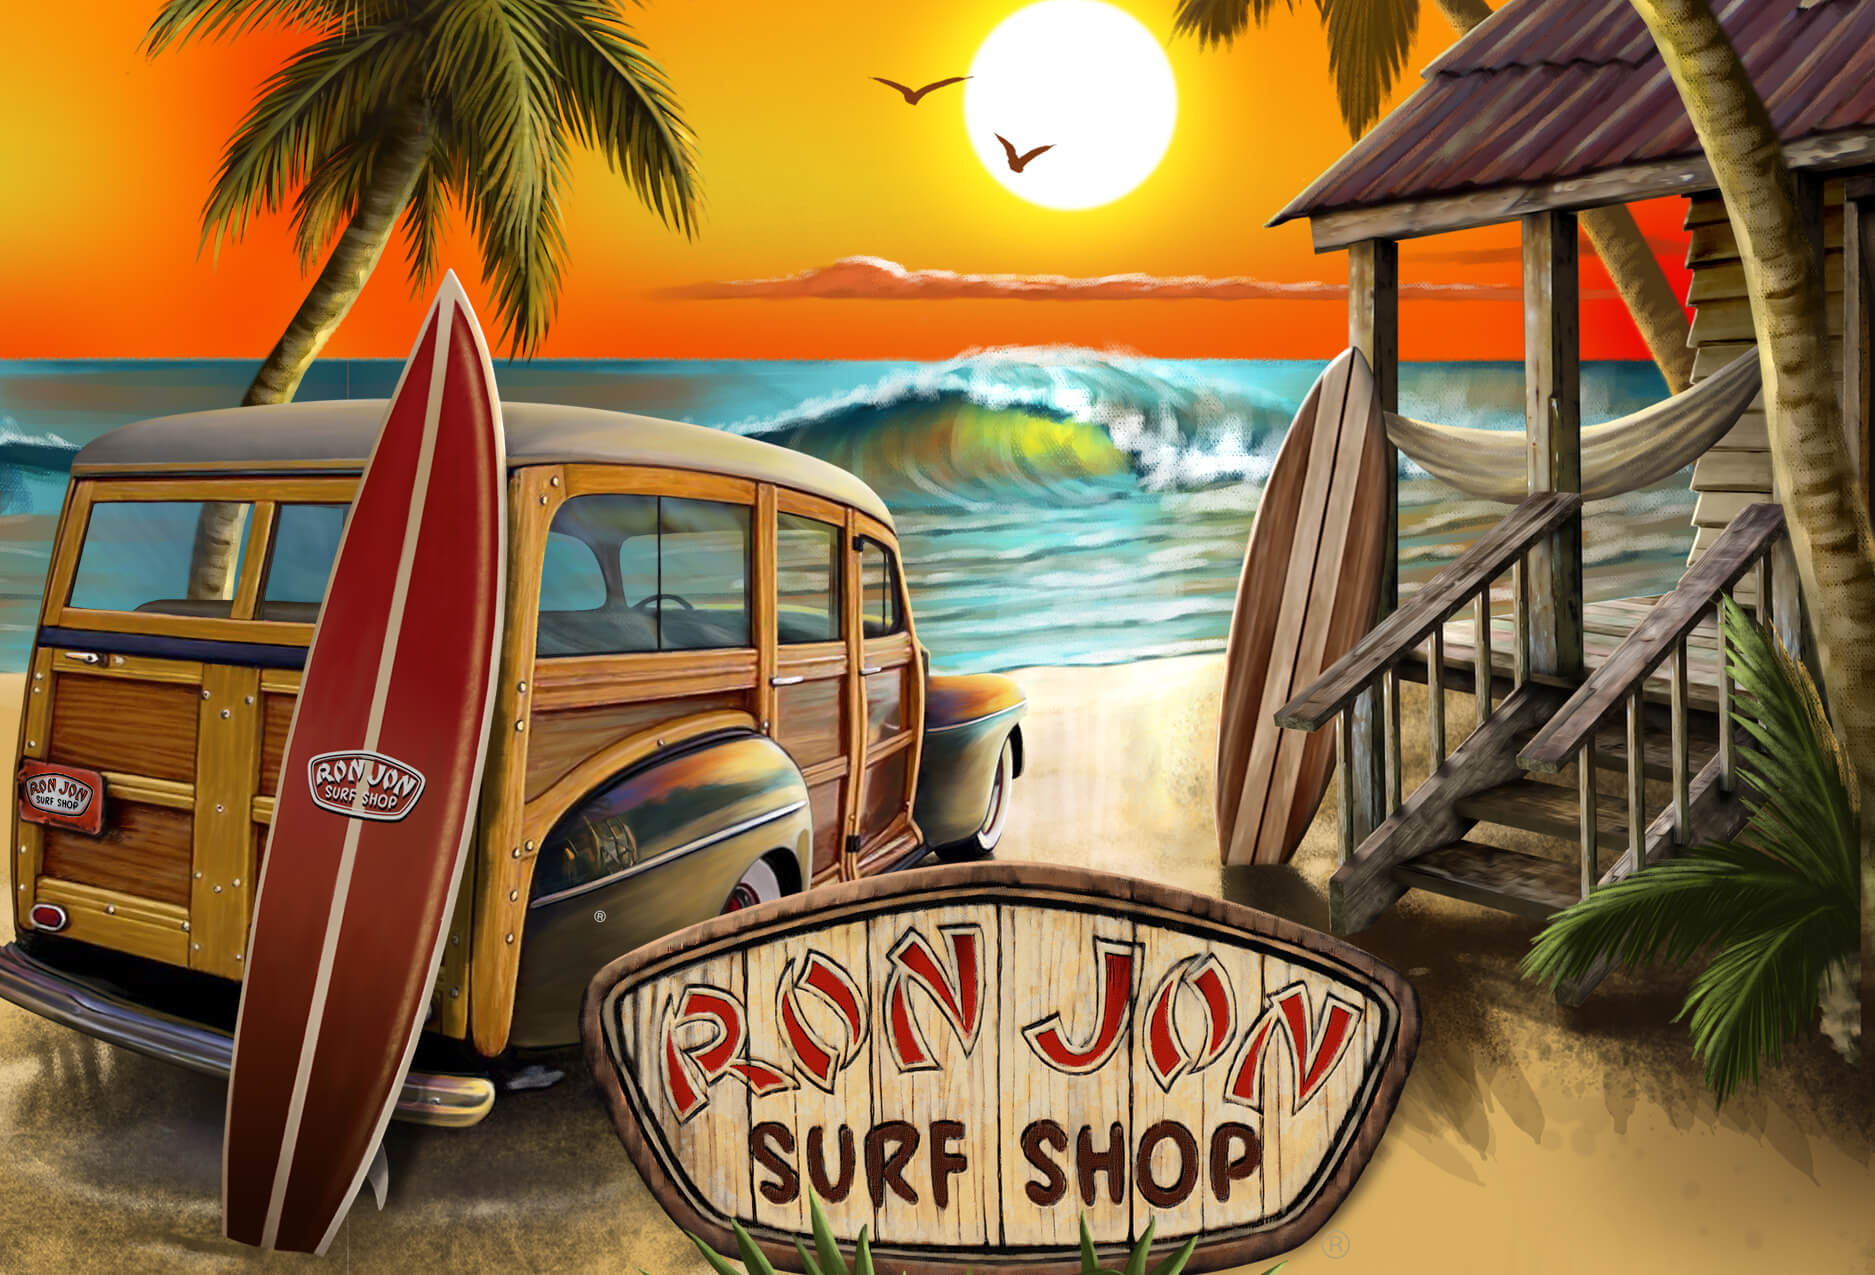 Puzzle showing Ron Jon woody wagon surfboards beach and ocean view